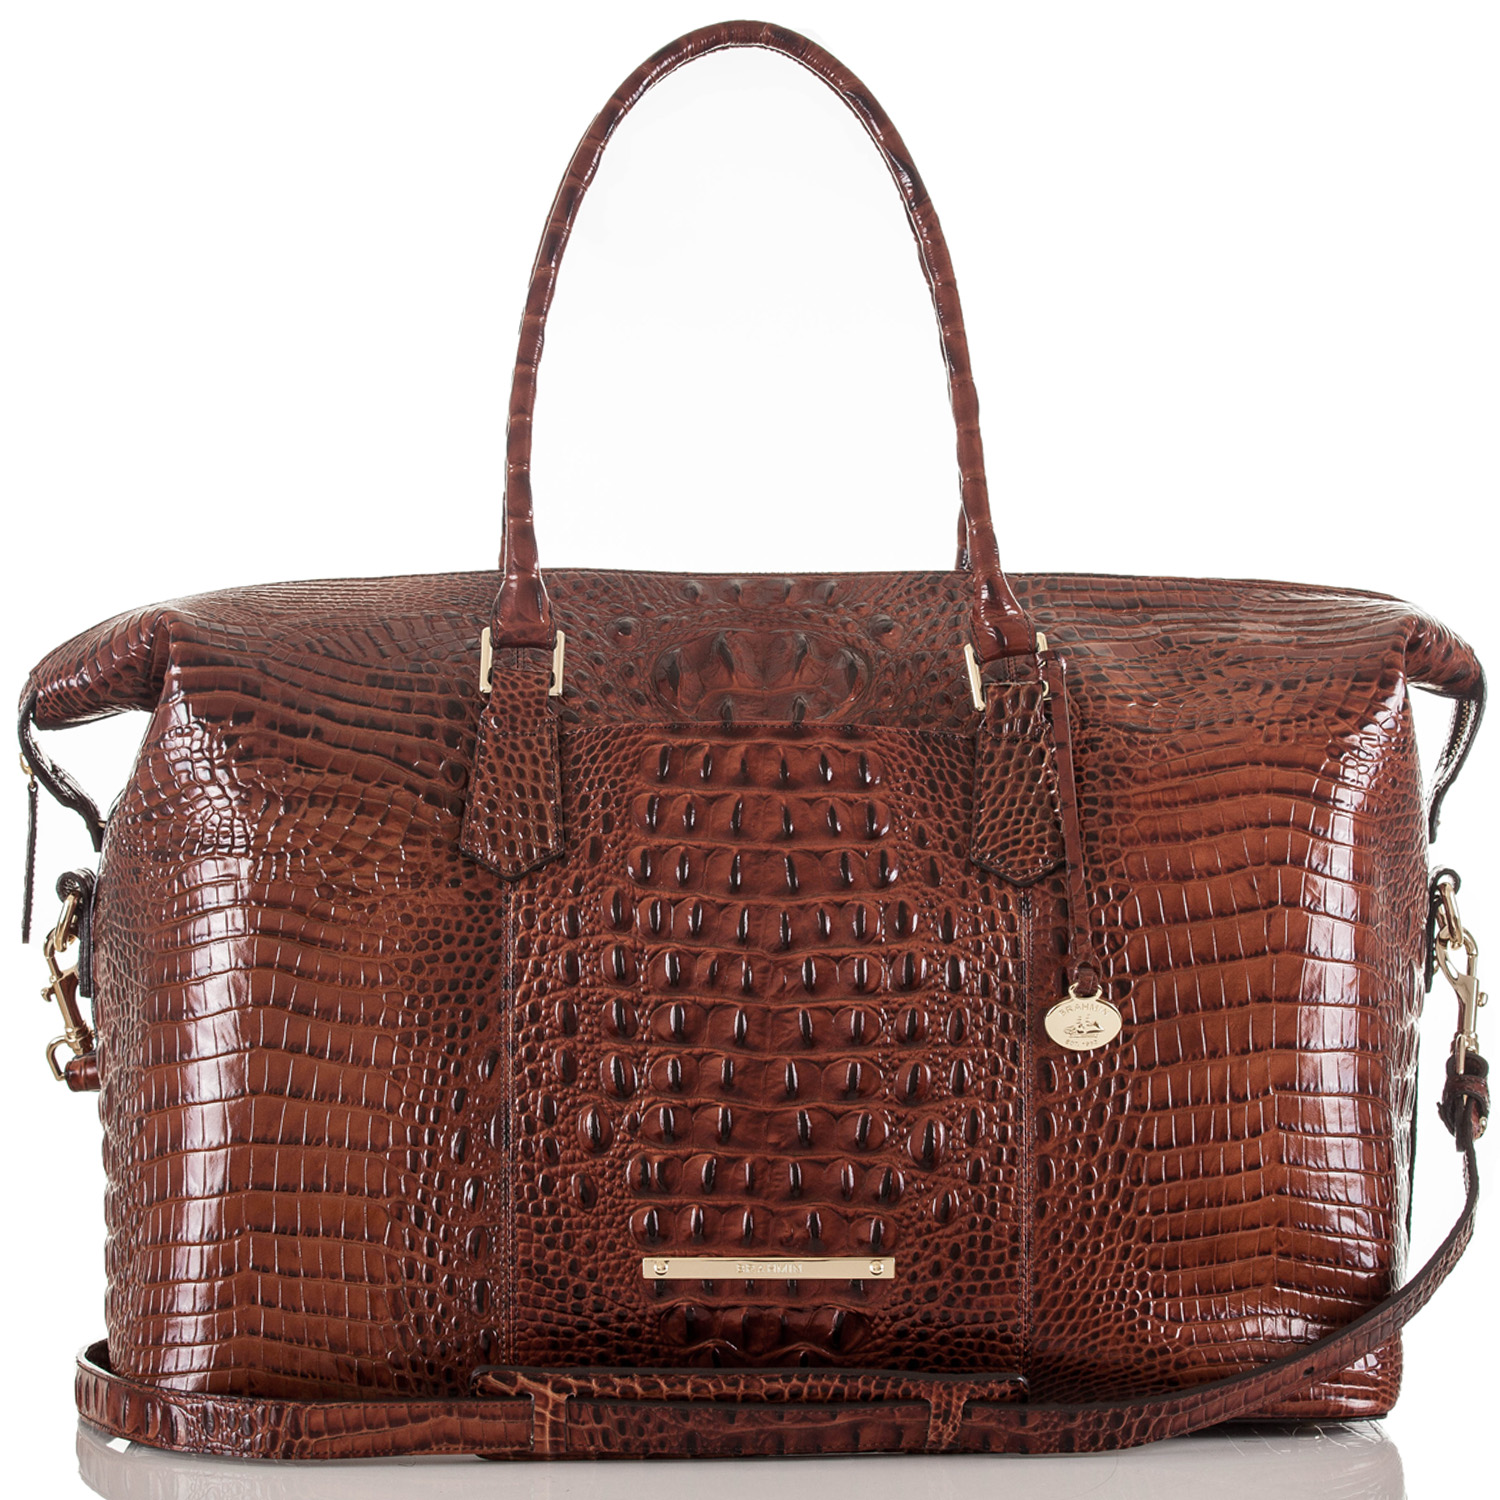 Shop Dillard's for your favorites BRAHMIN handbags from Brahmin, Coach, MICHAEL Michael Kors, Dooney & Bourke, and Fossil. Designer purses including satchels, crossbody bags, clutches and wallets at Dillard's.